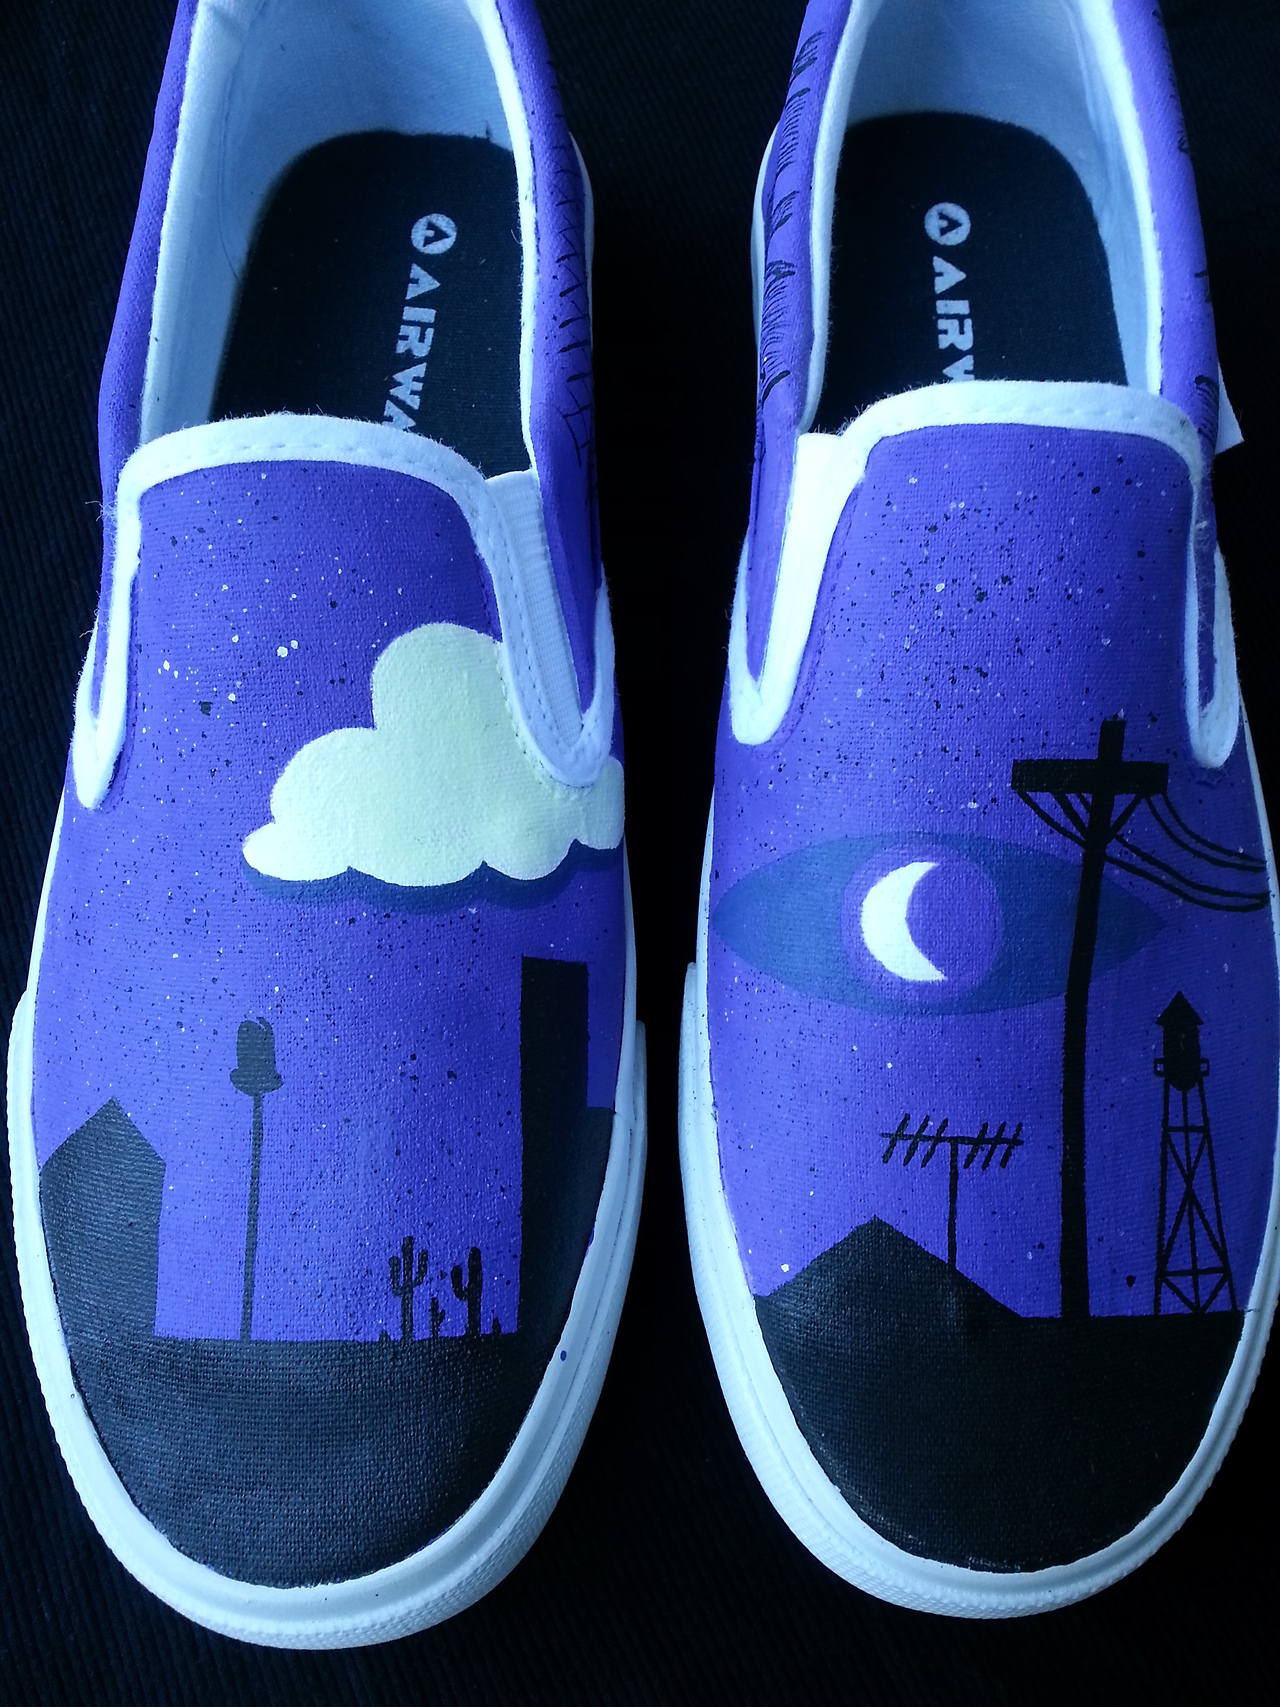 Welcome To Night Vale Glow Shoes